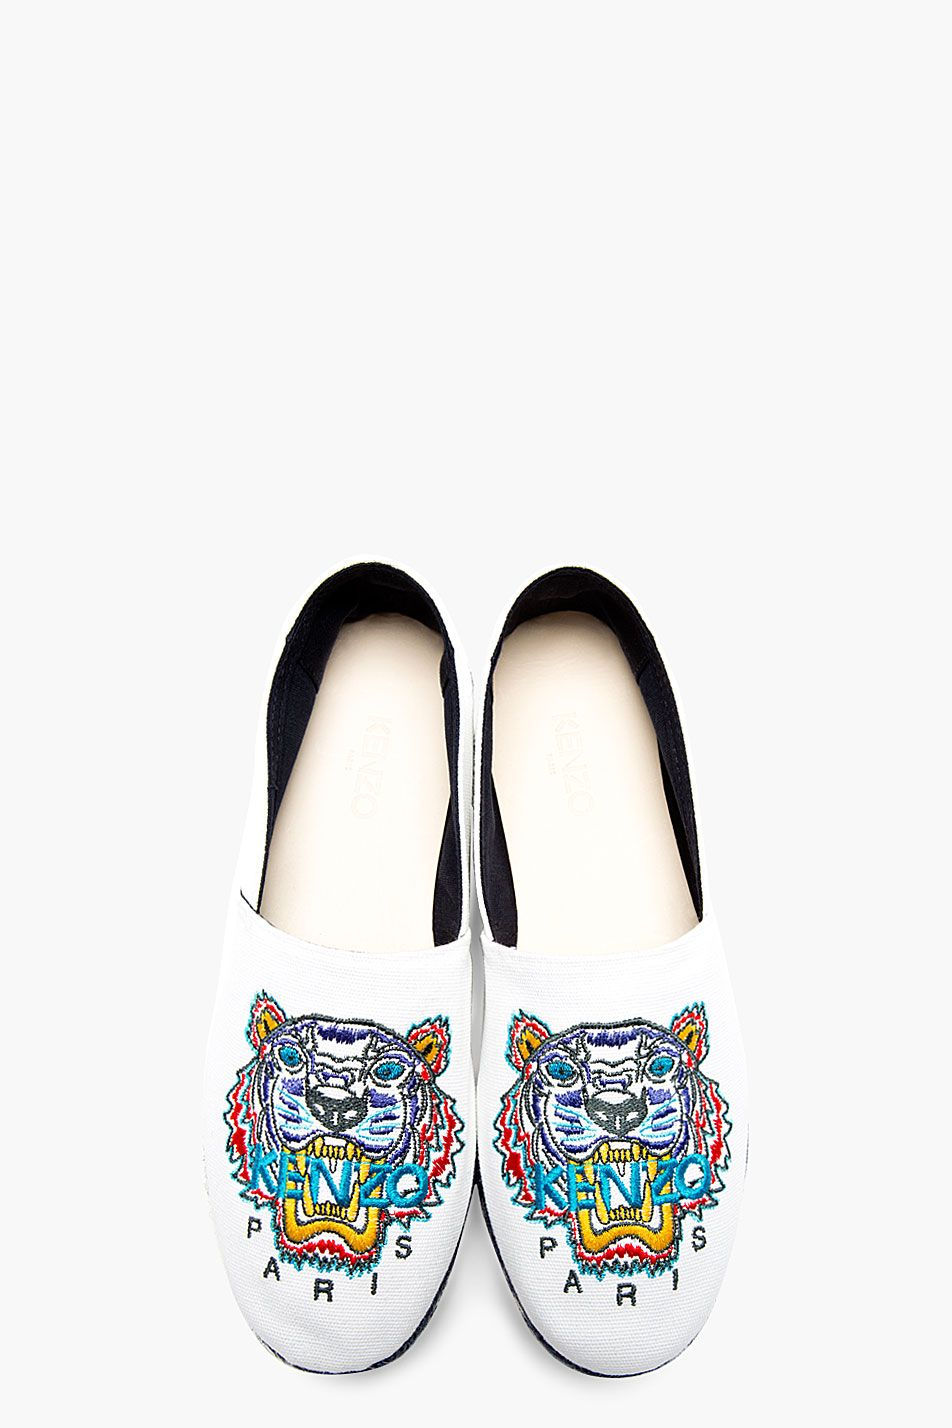 726eb768 KENZO White Canvas Embroidered Tiger SPOON Espadrilles | Men's shoes ...